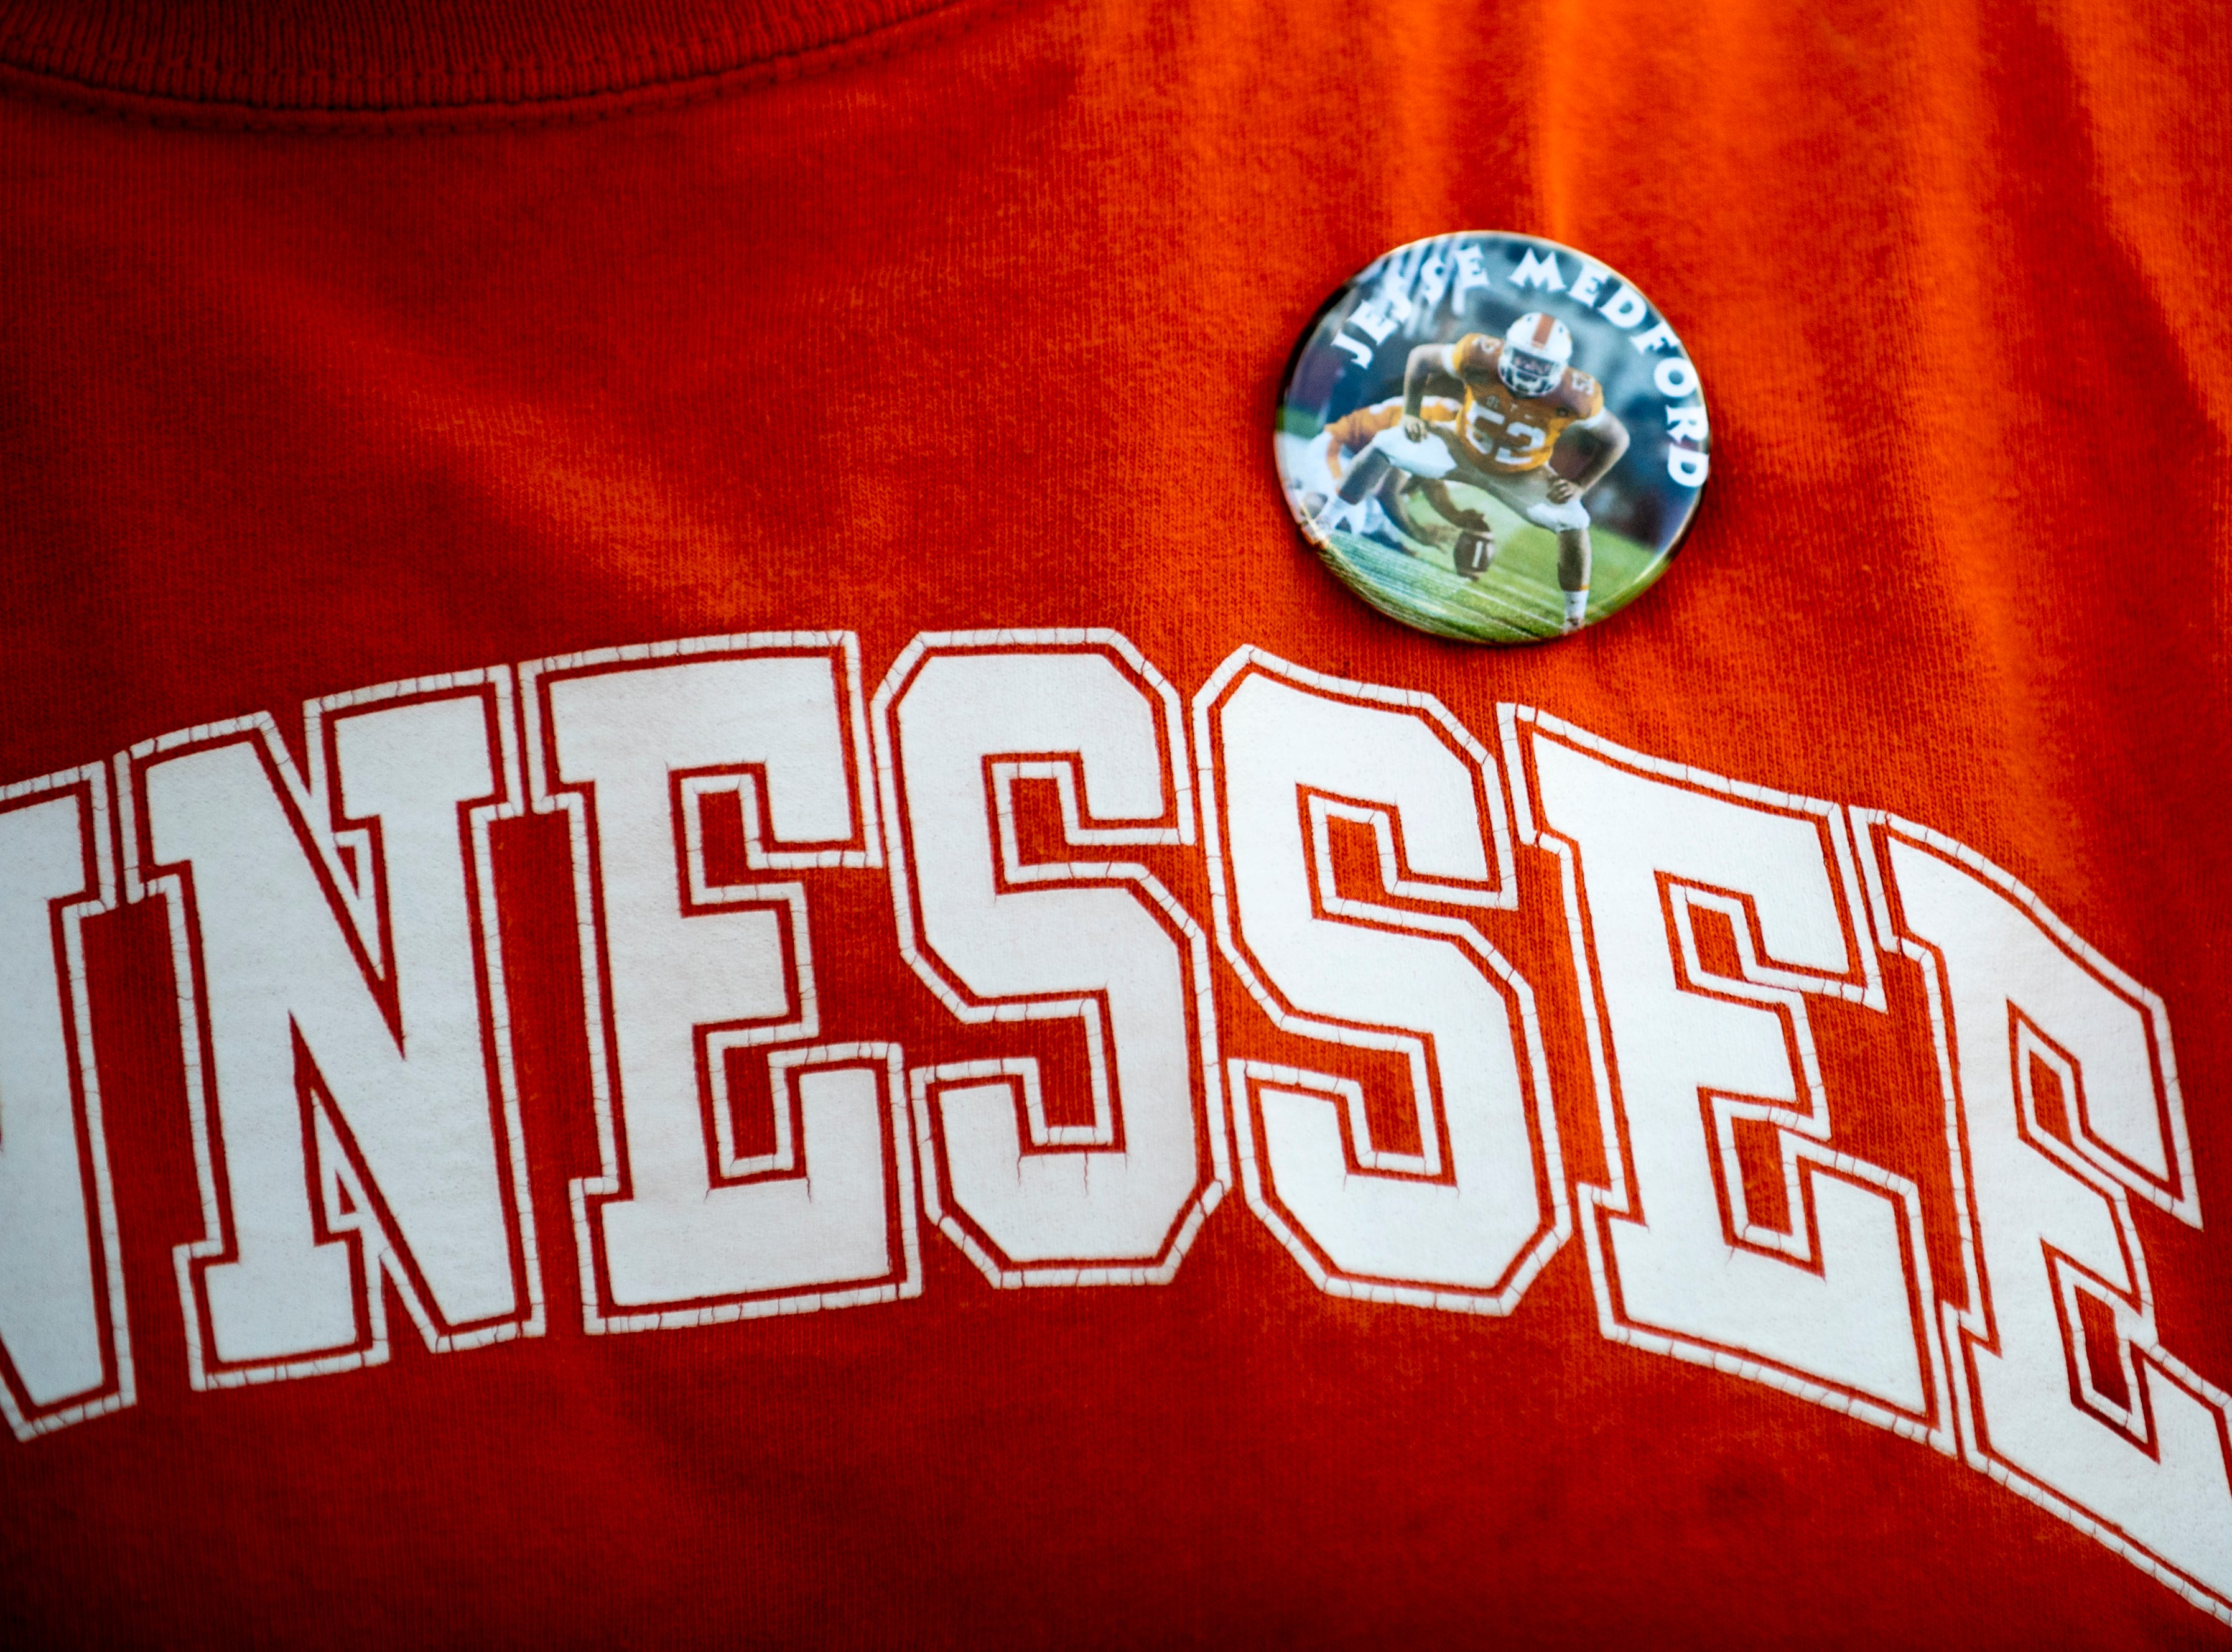 A Tennessee fan wears a Jesse Medford pin during a game between Tennessee and South Carolina at Williams-Brice Stadium in Columbia, South Carolina on Saturday, October 27, 2018.